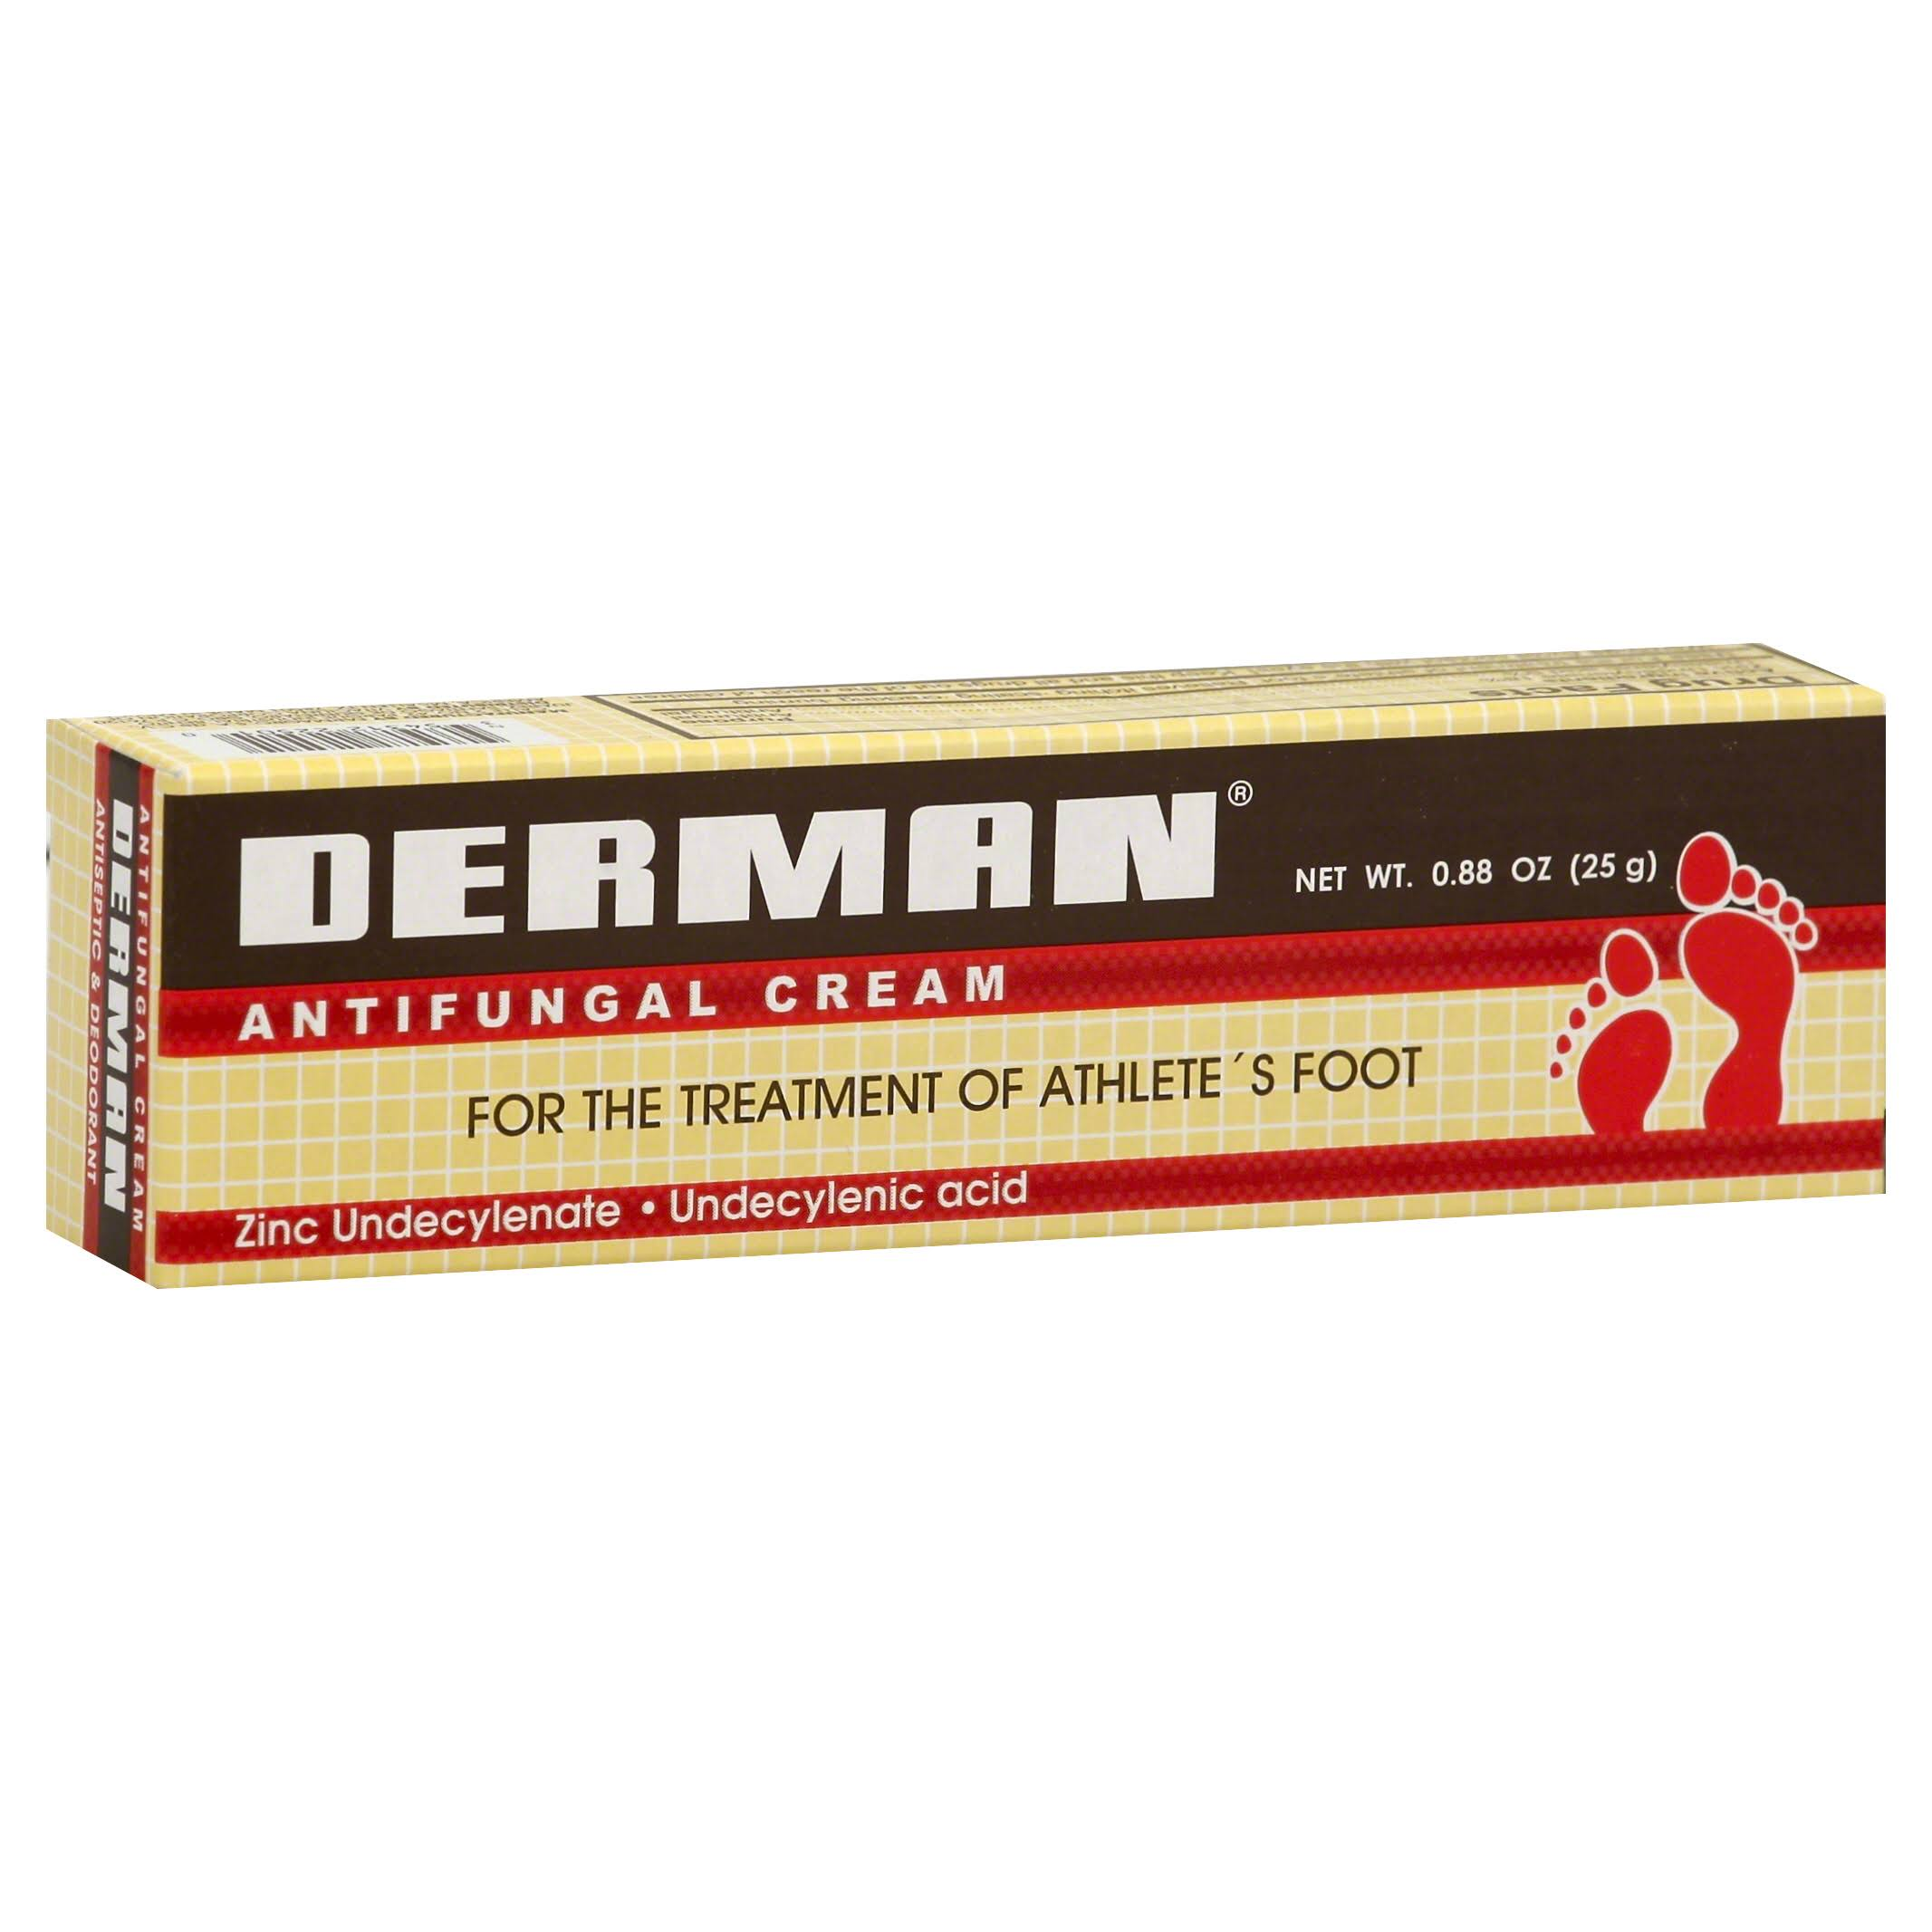 Derman Antifungal Cream Athlete's Foot Treatment - 25g